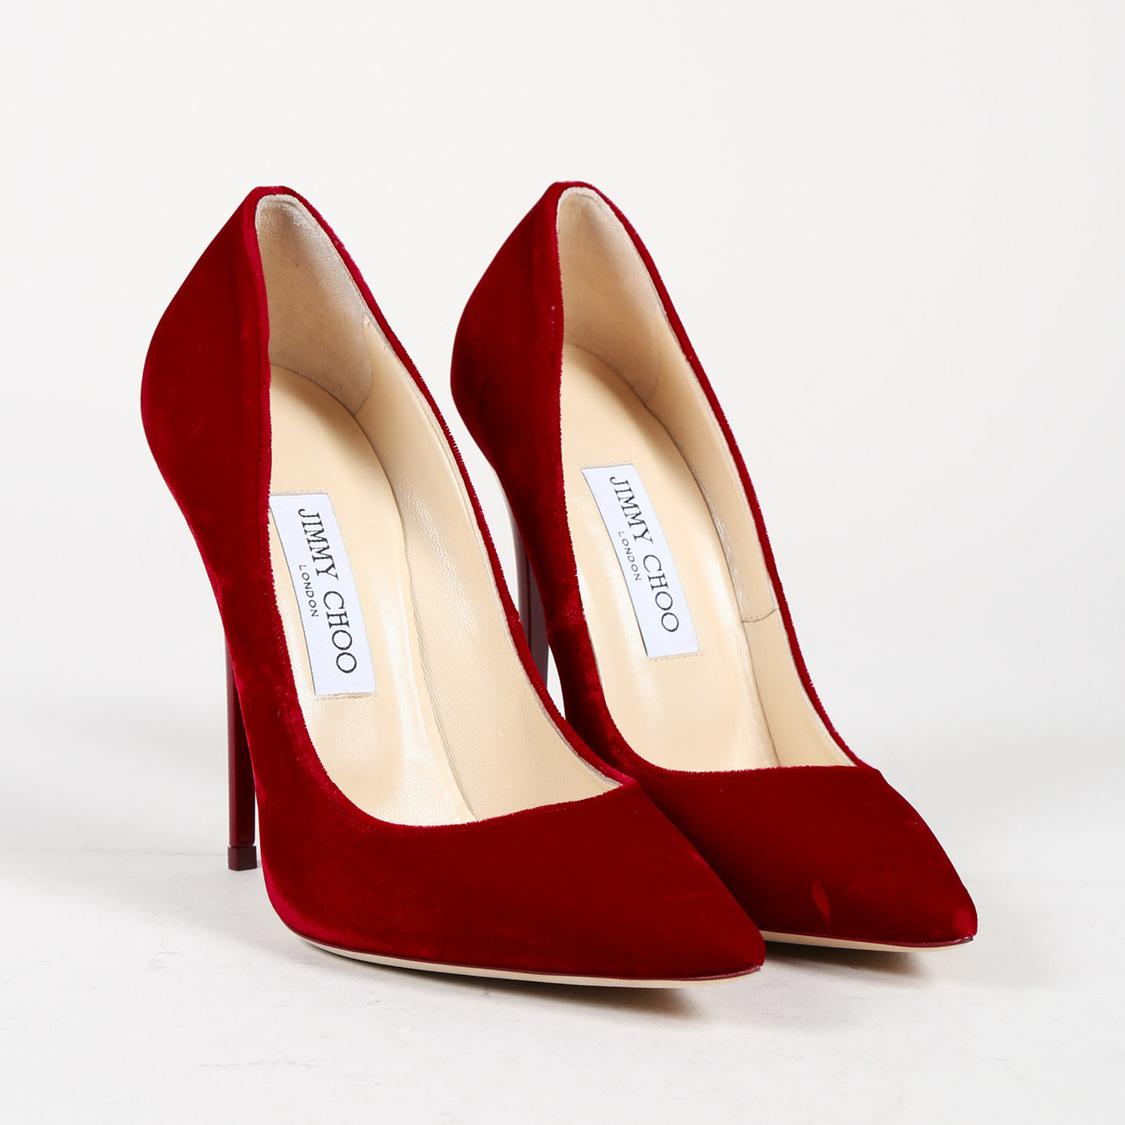 970e09c8e1ee Jimmy Choo Nwt Red Velvet